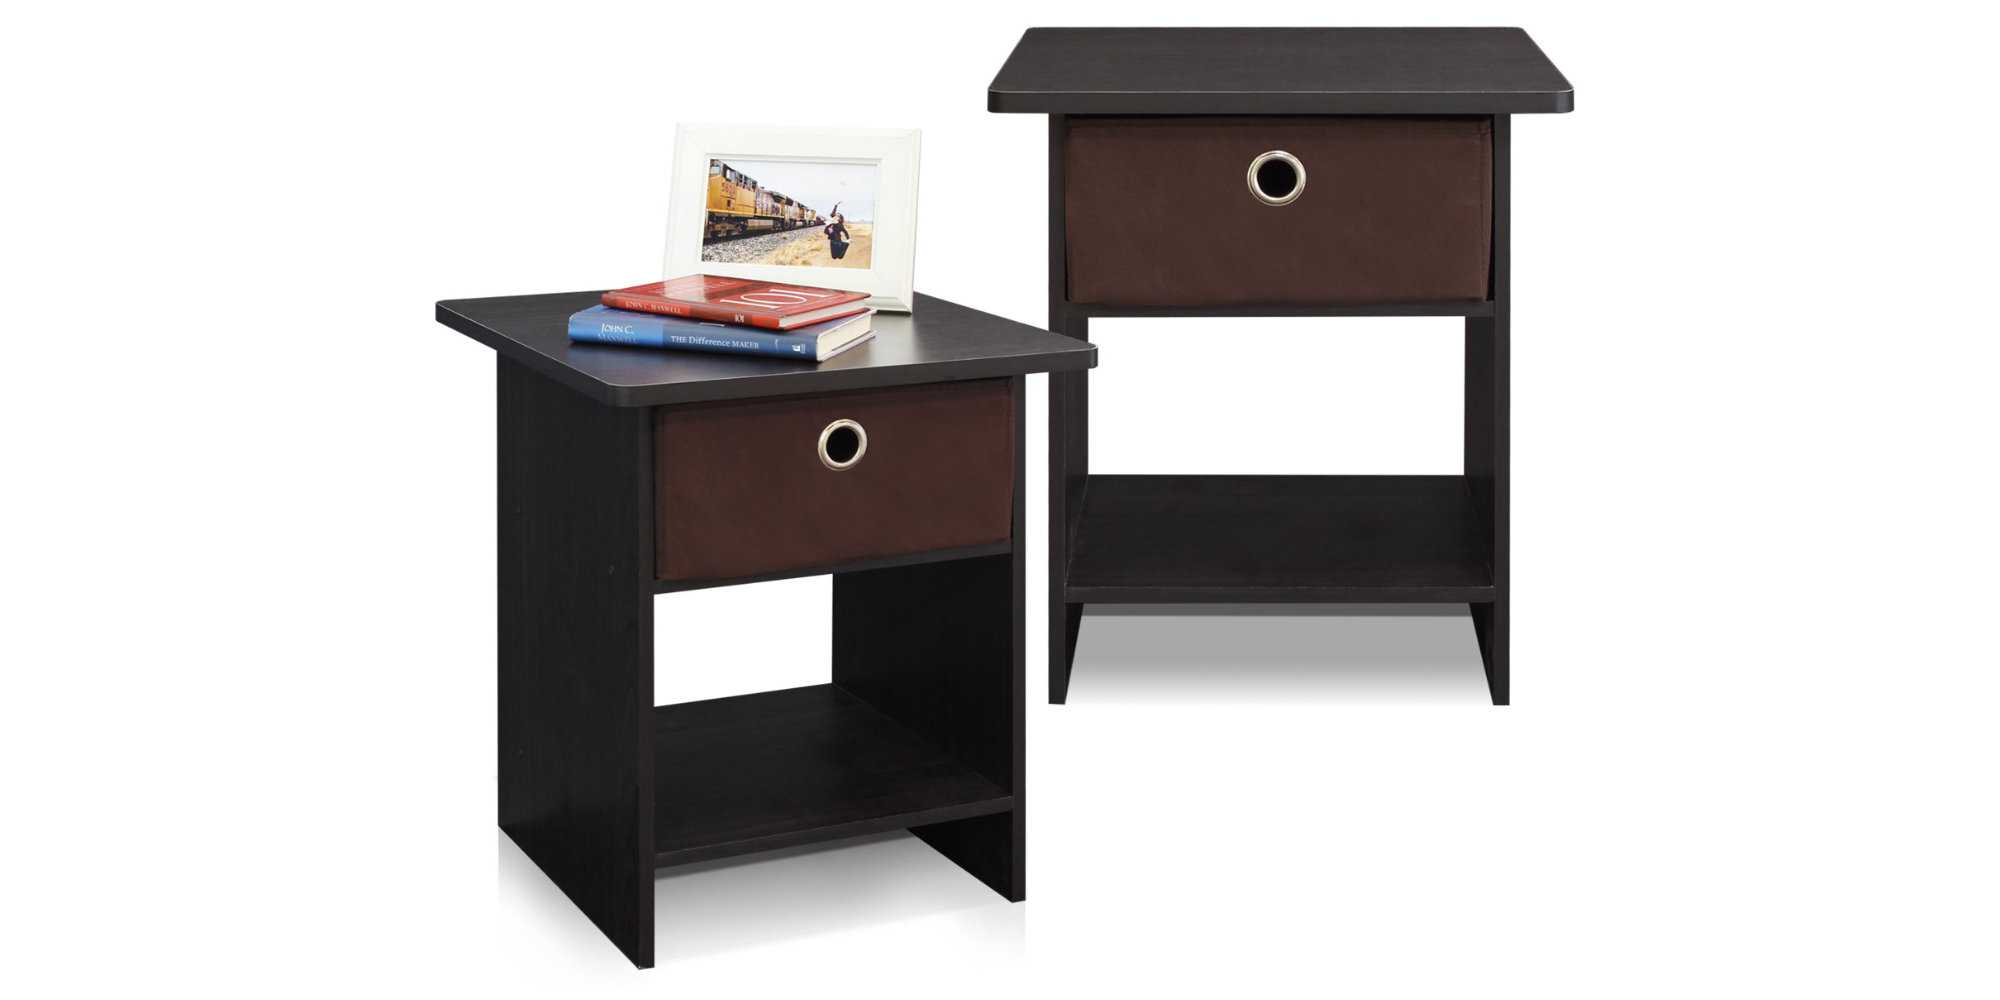 Score two Furinno Nightstands at Amazon for just $13.50 each (Save 40%)